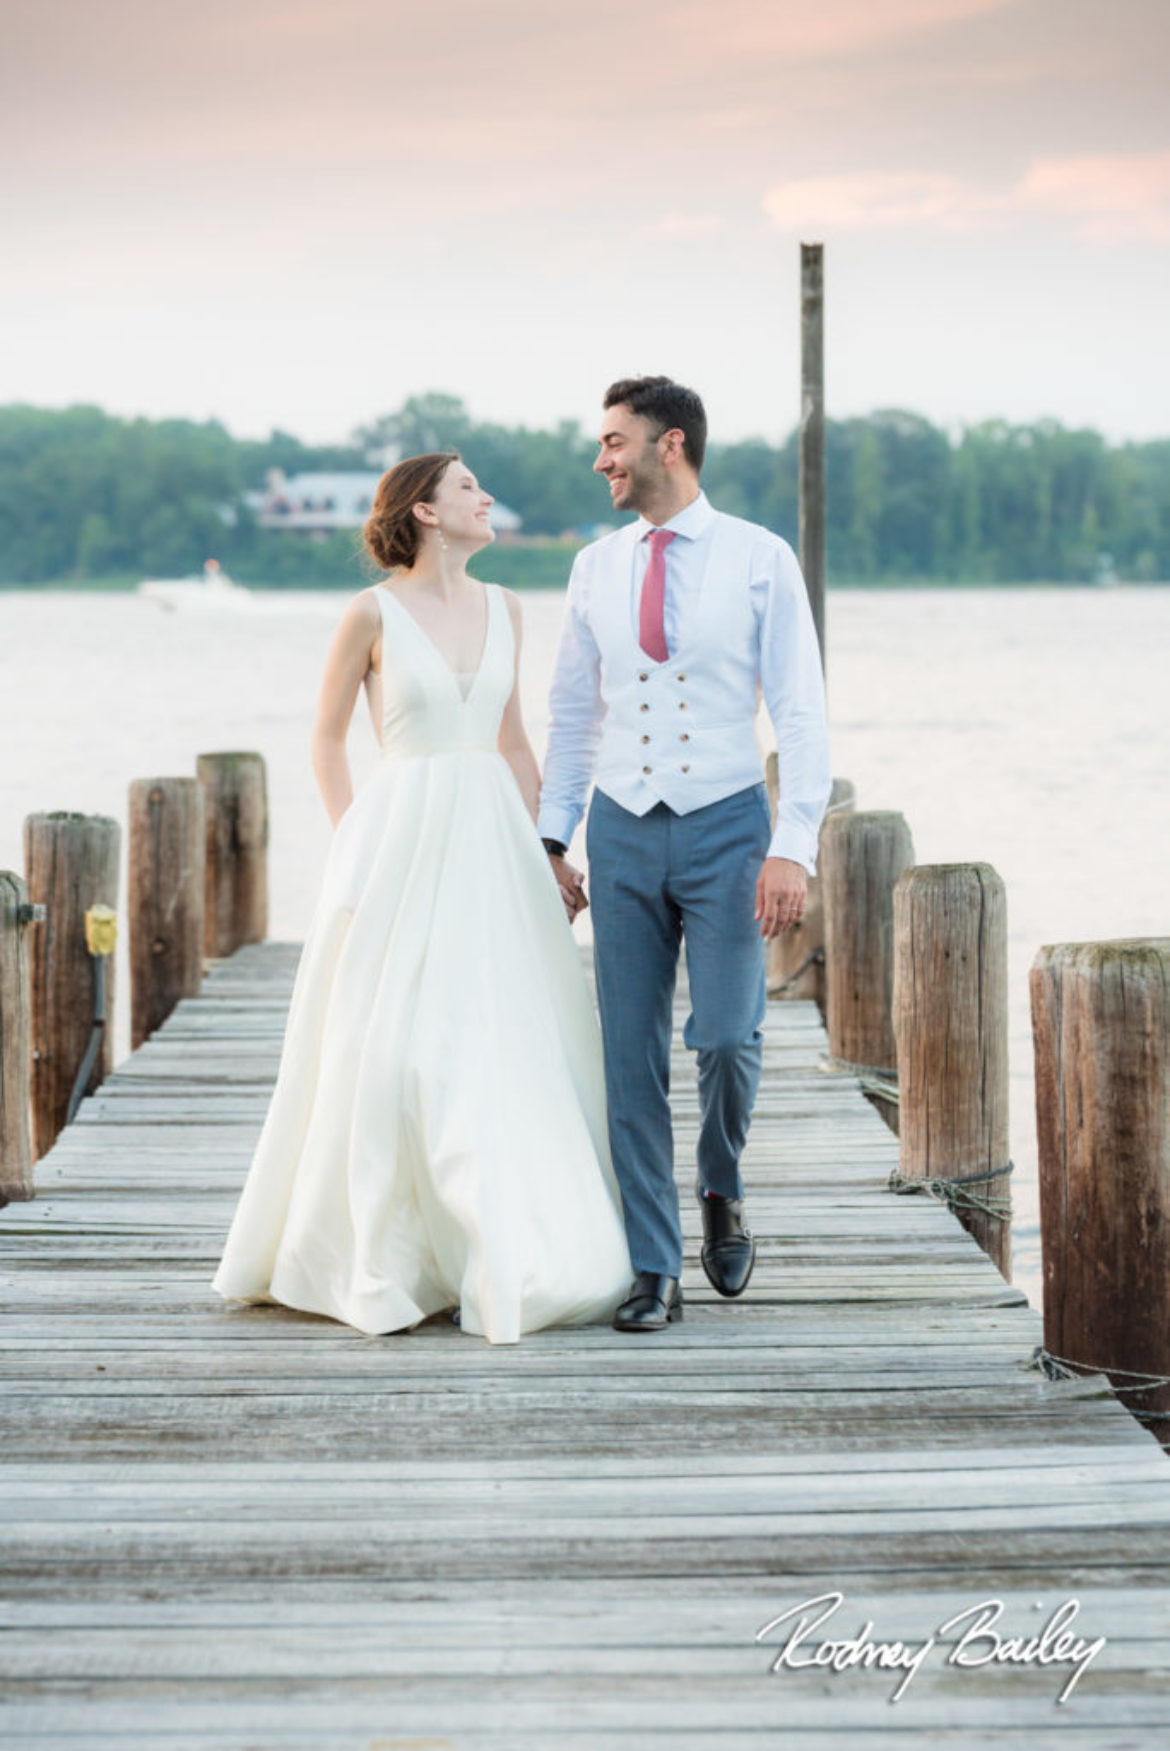 A Simply Perfect Wedding Day | Take an Evening Stroll